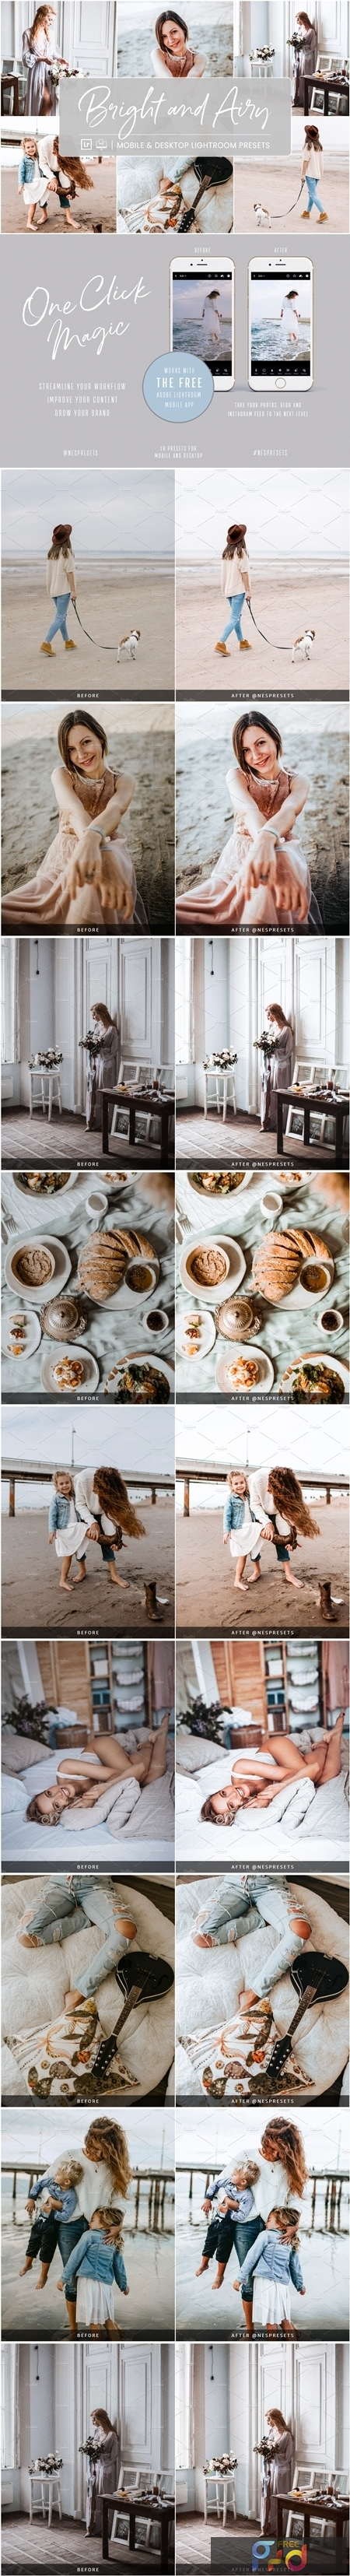 Lightroom Presets Bright and Airy 4420392 1